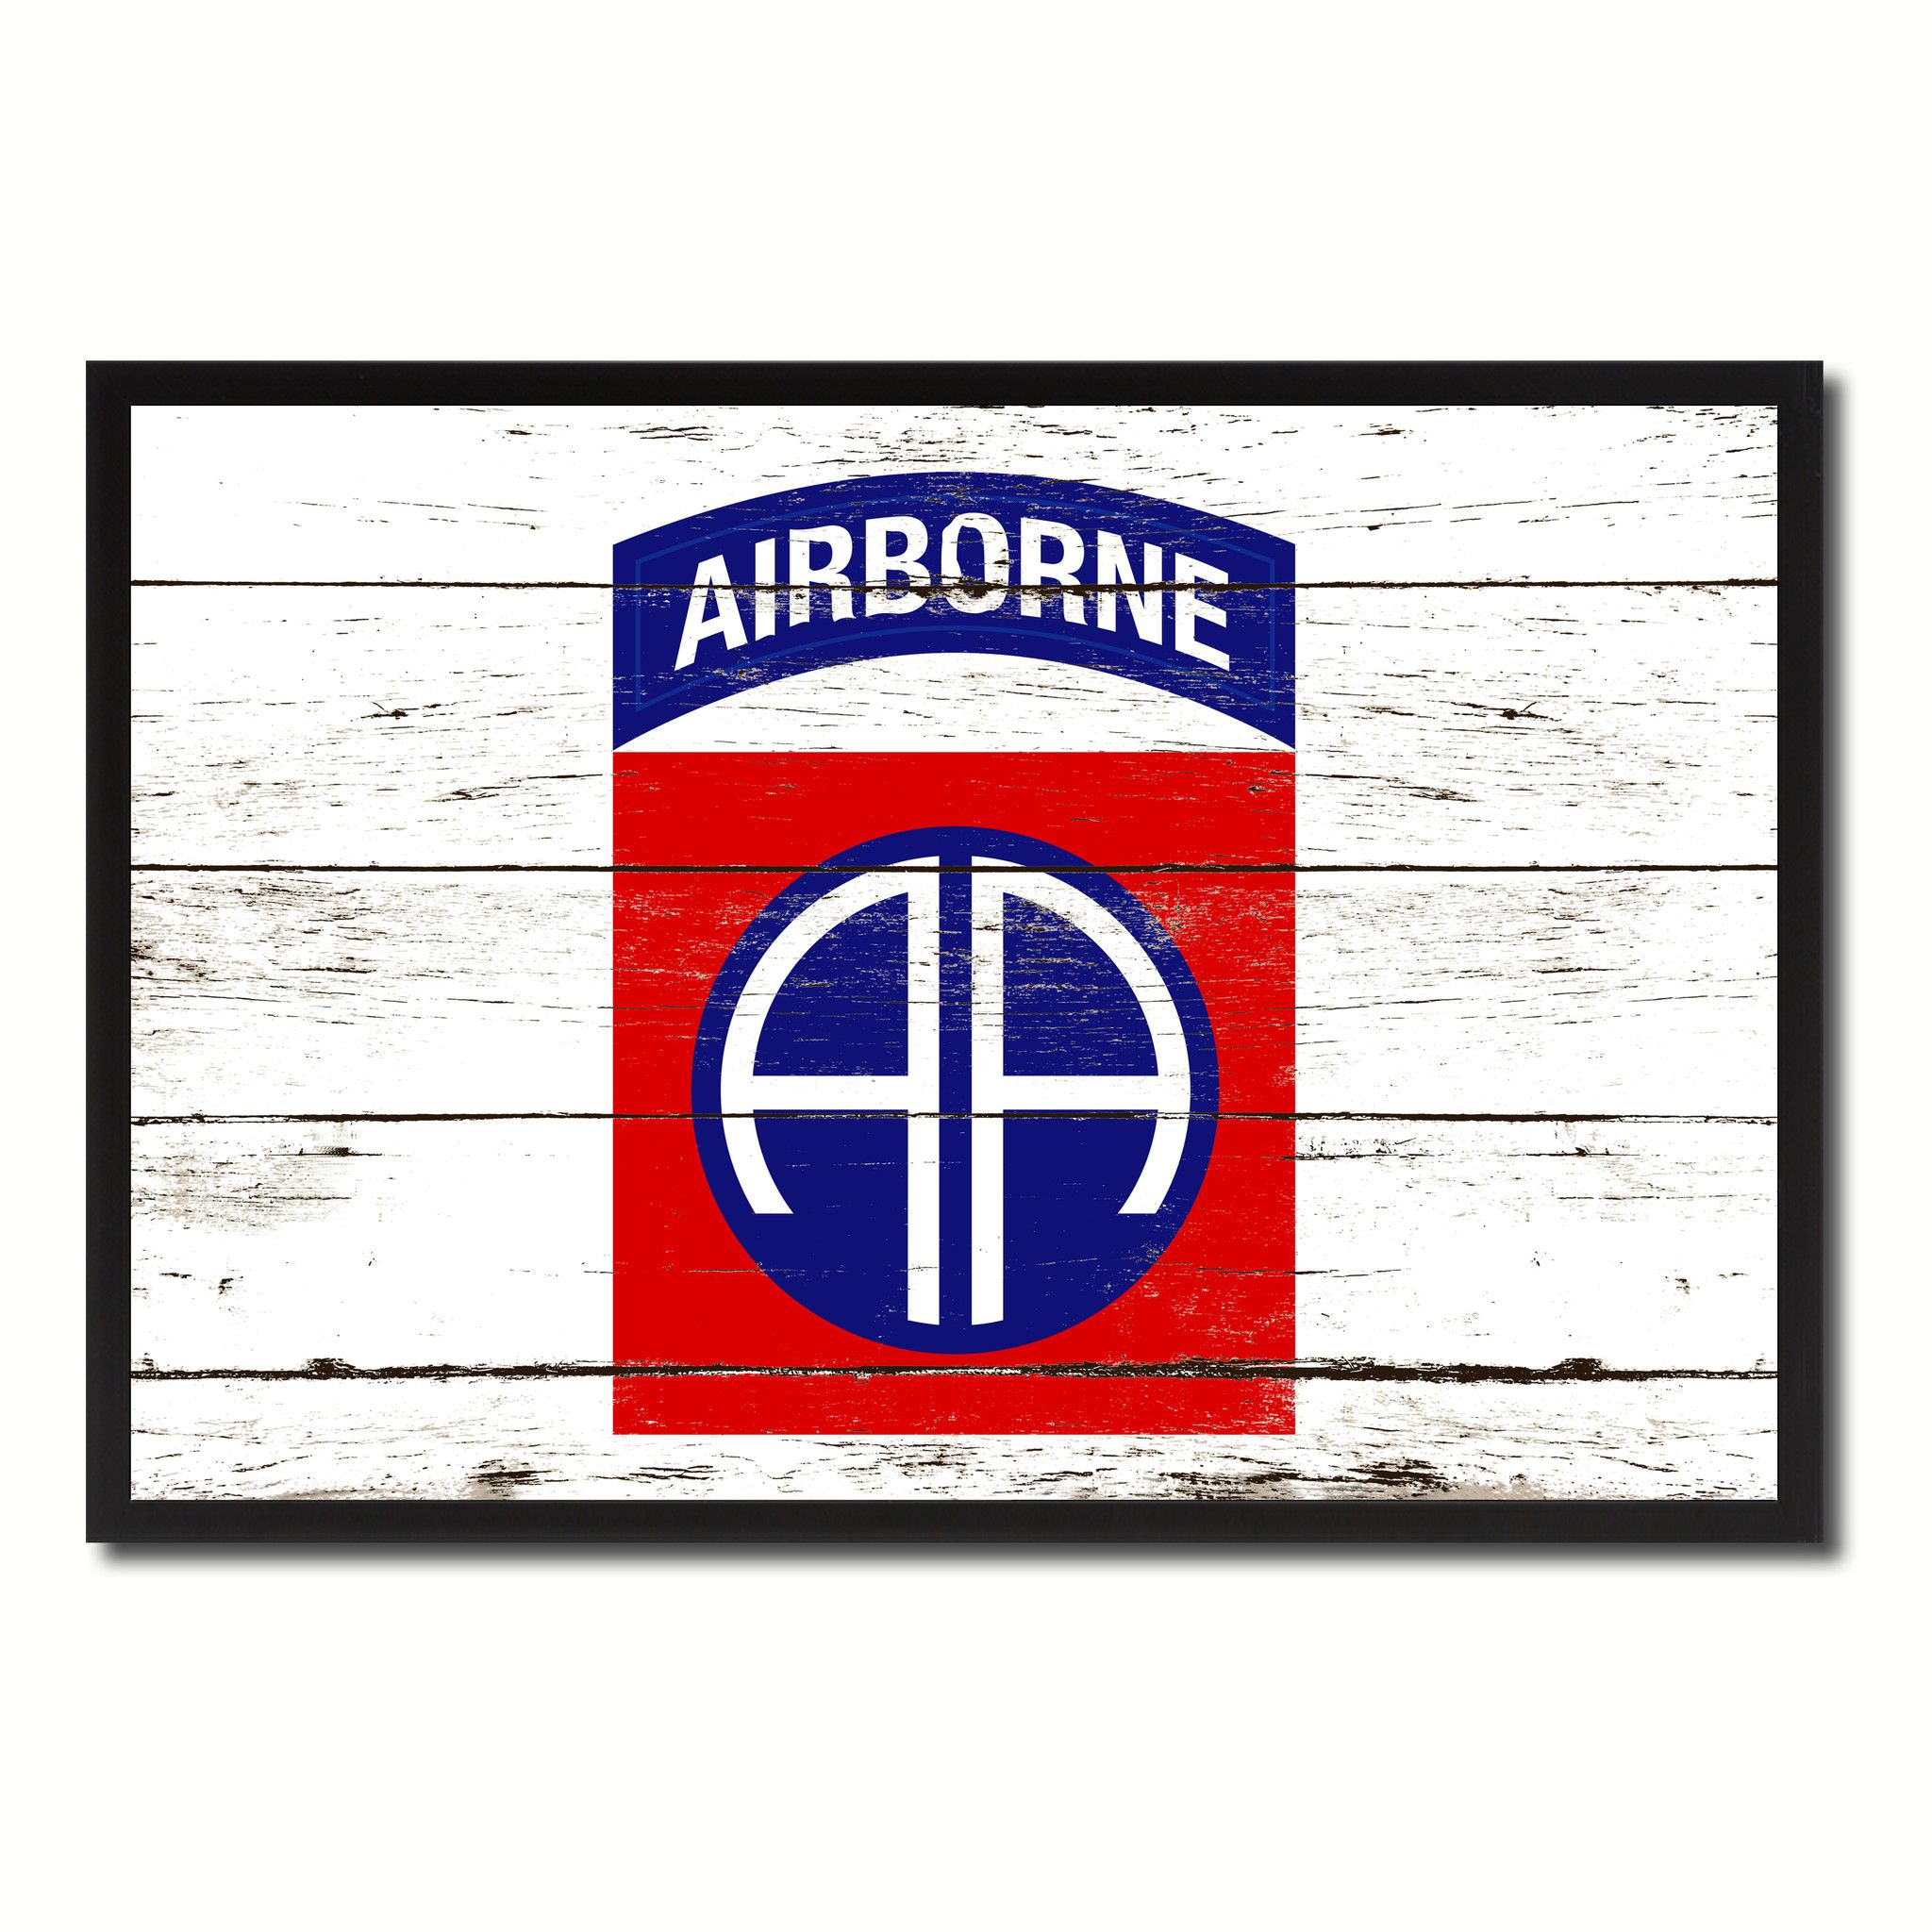 Us army 82nd airborne military flag vintage canvas print with us army 82nd airborne military flag canvas print picture frame home decor wall art gifts jeuxipadfo Images